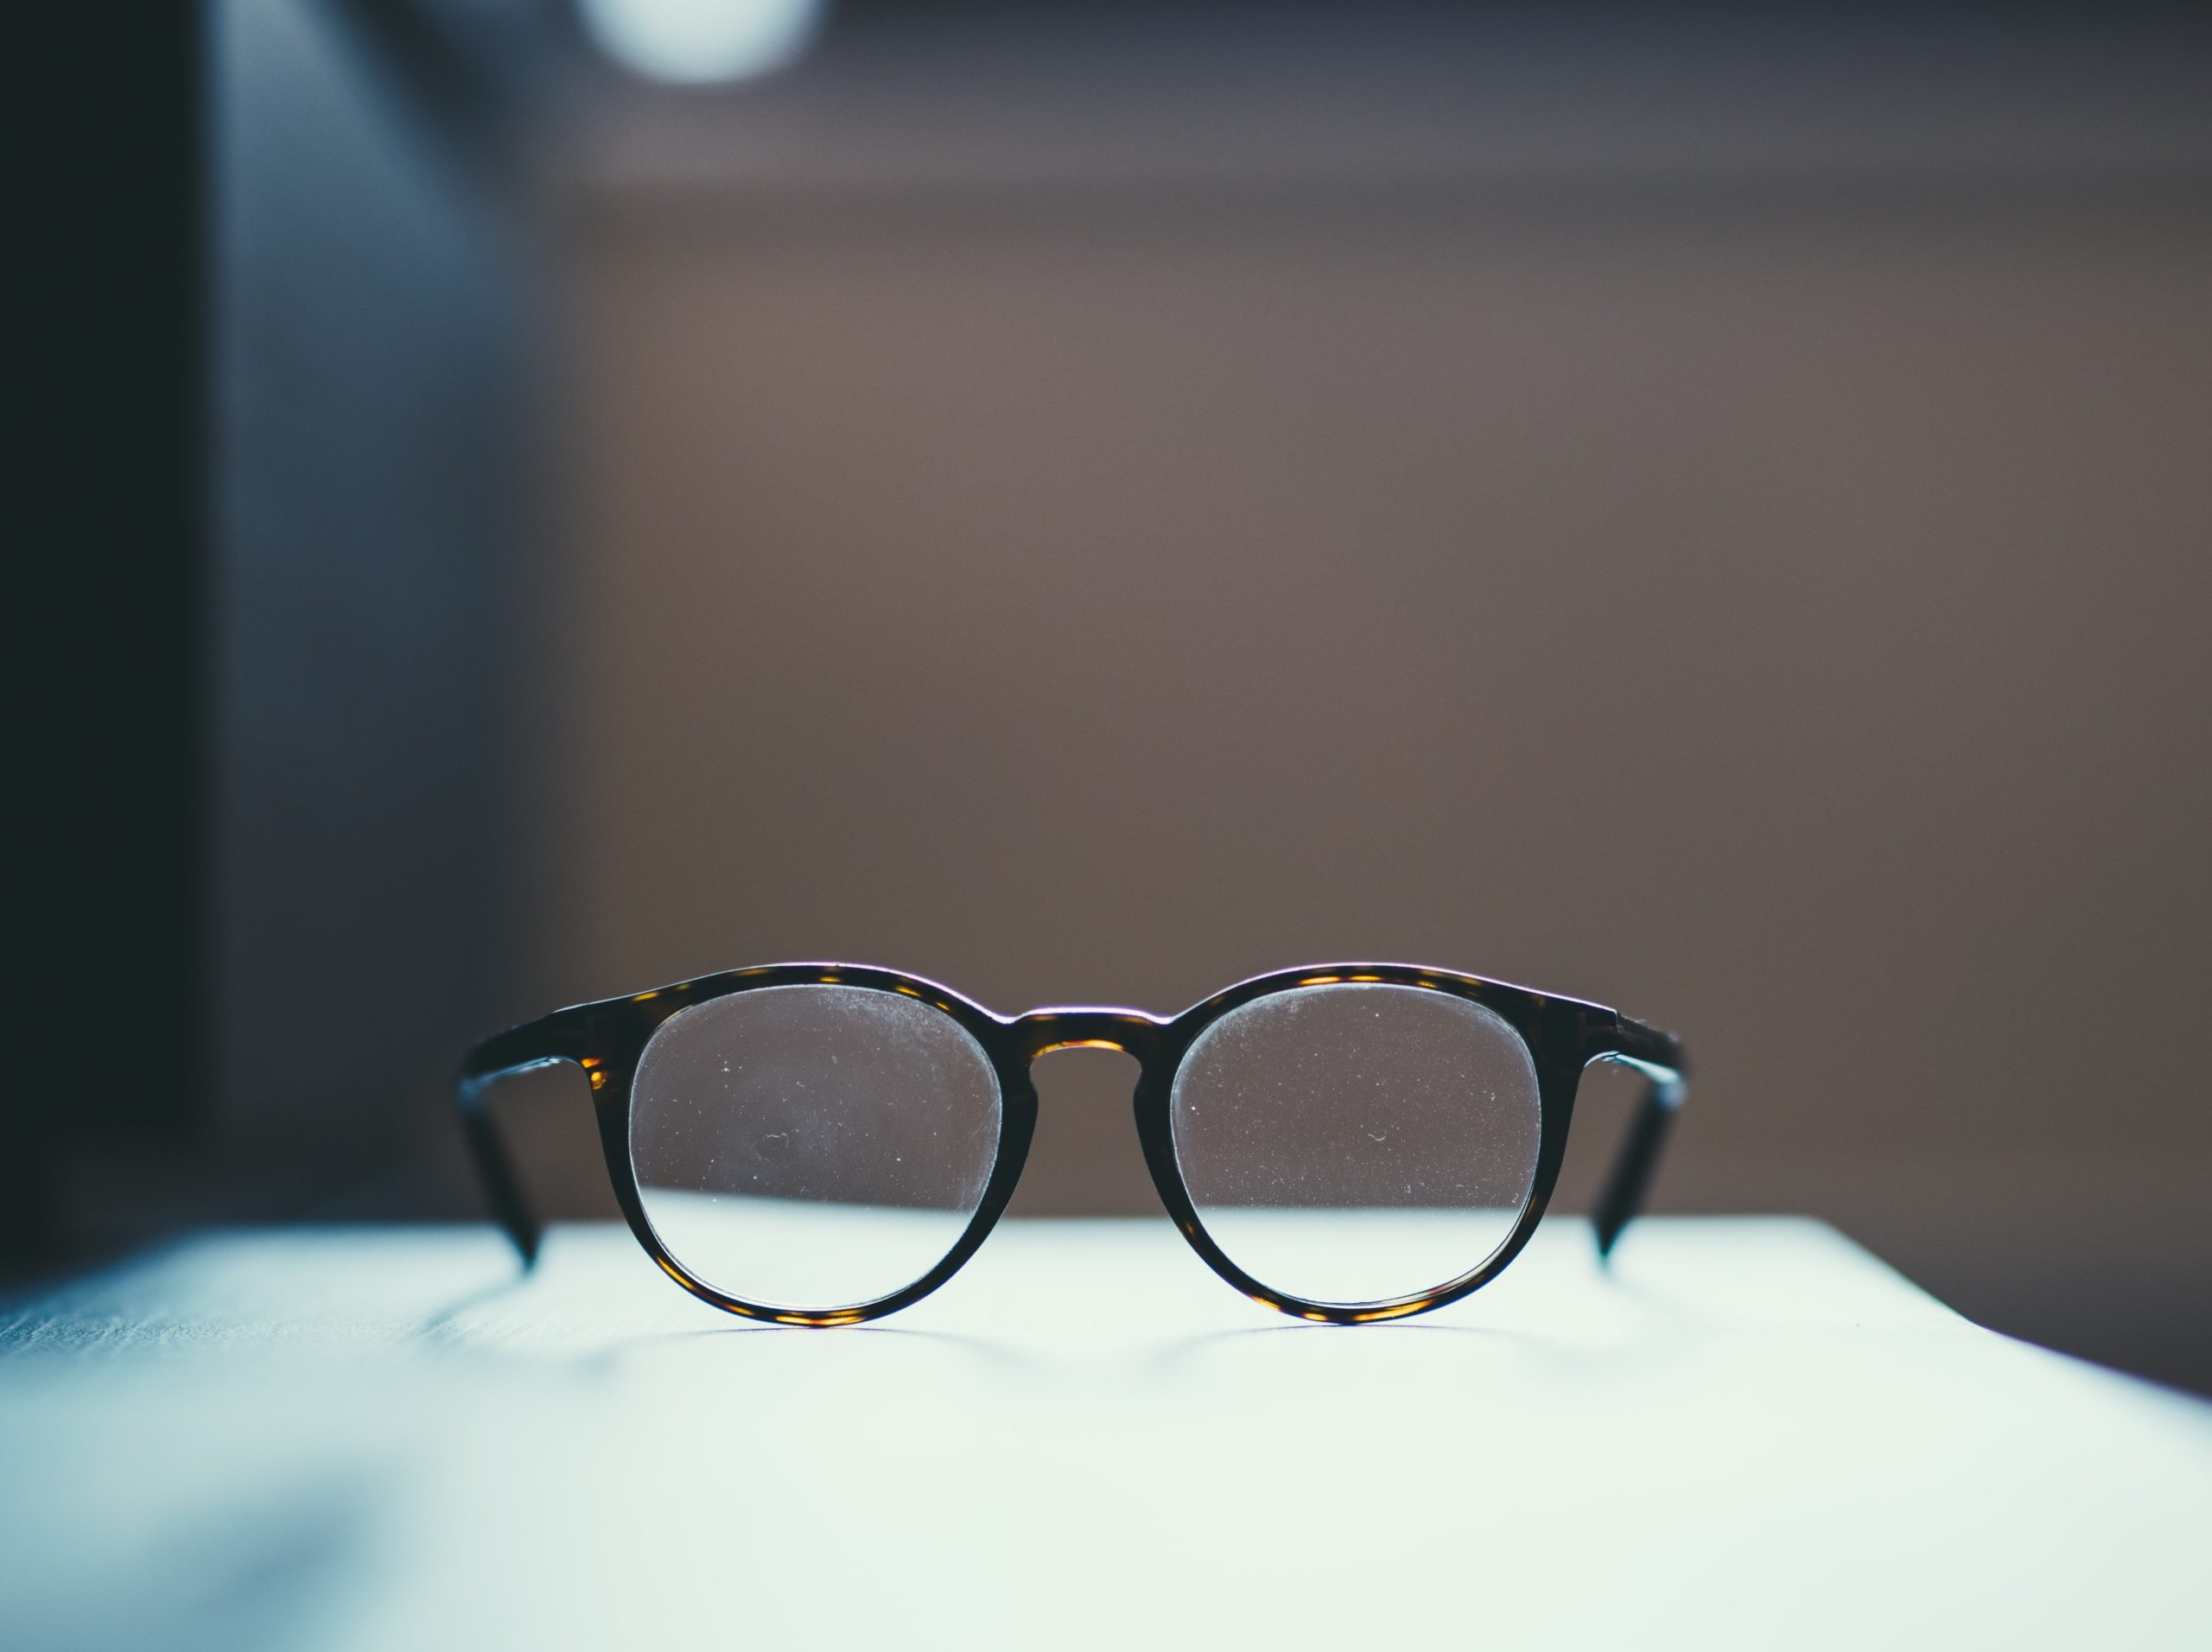 Glasses on a table.